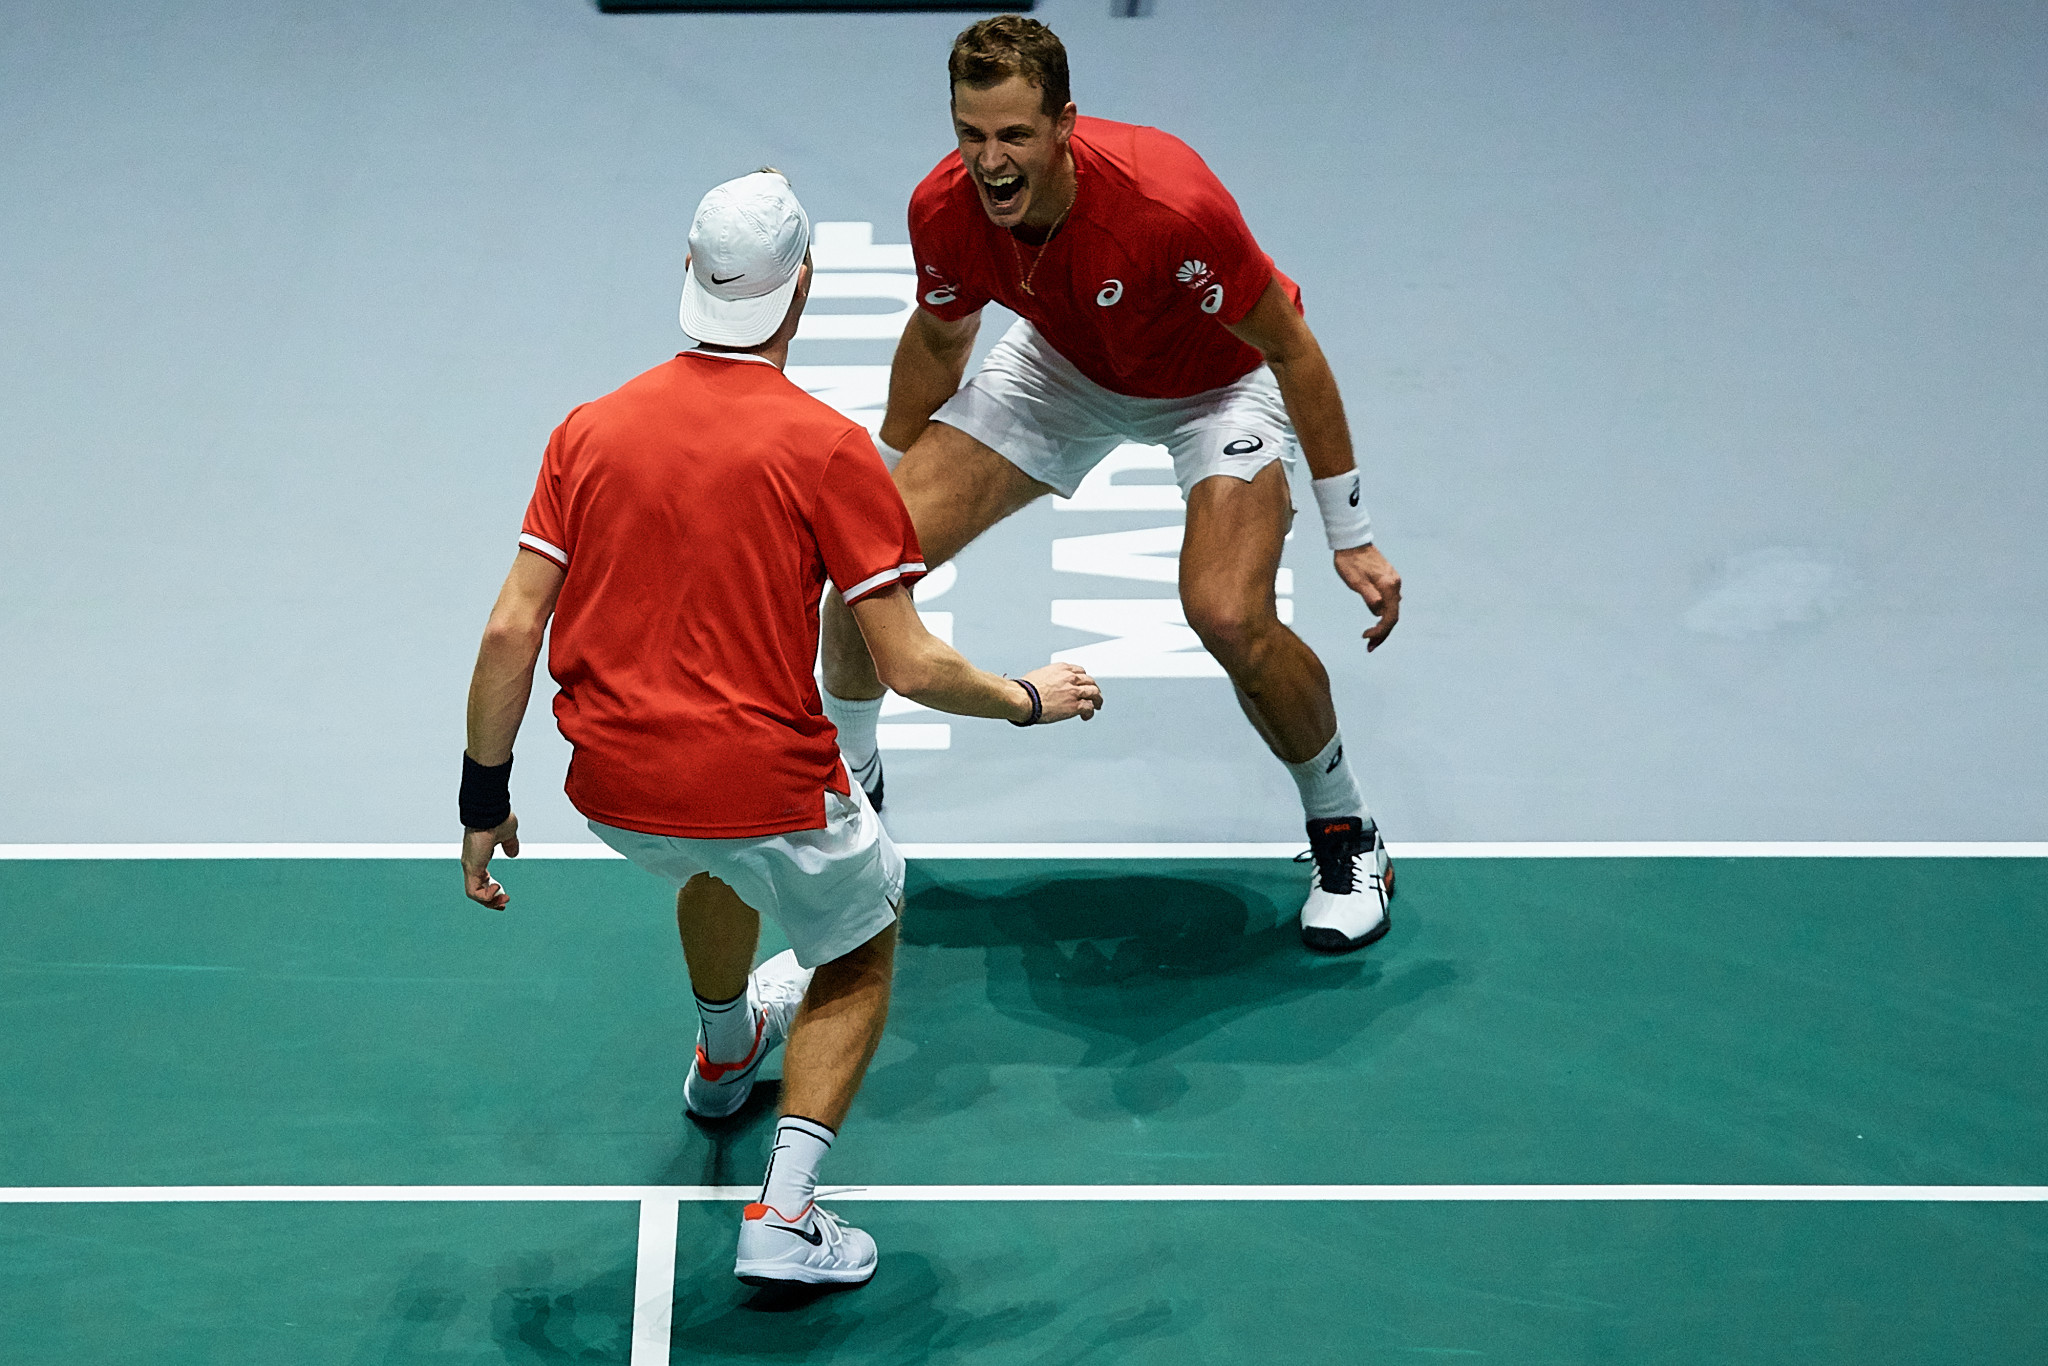 Canada reach first Davis Cup Final after beating Russia